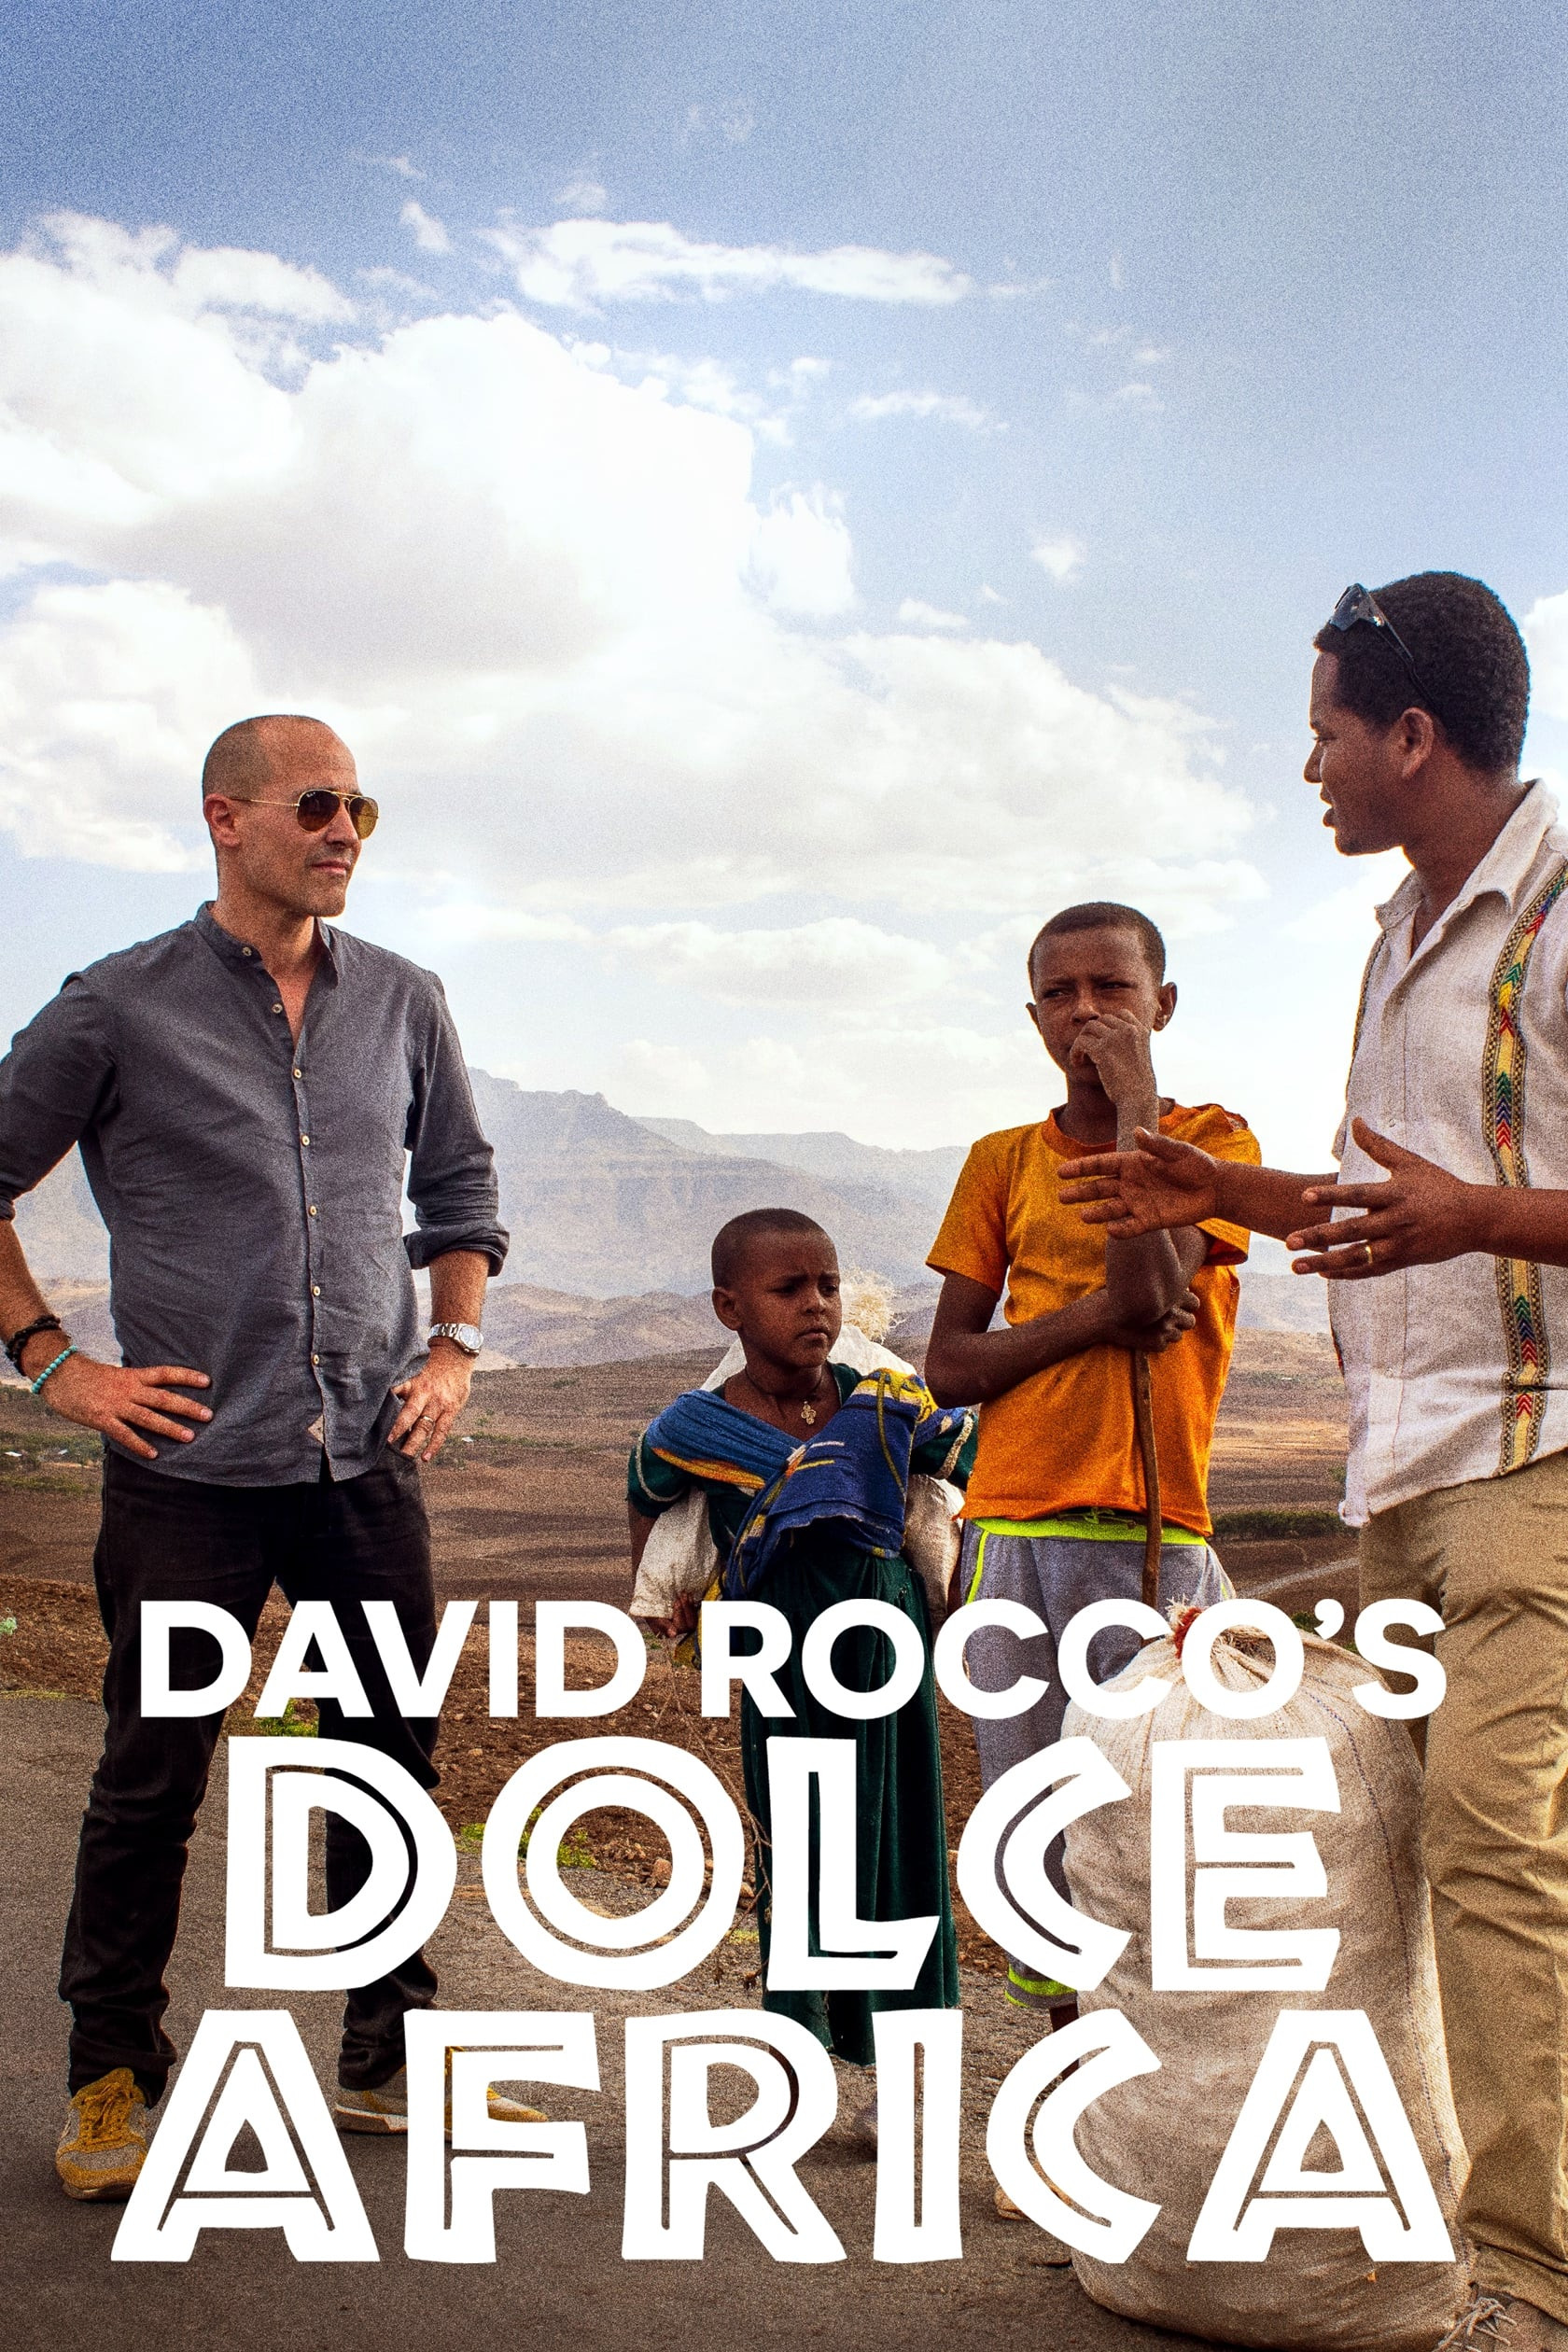 David Rocco's Dolce Africa (2018)